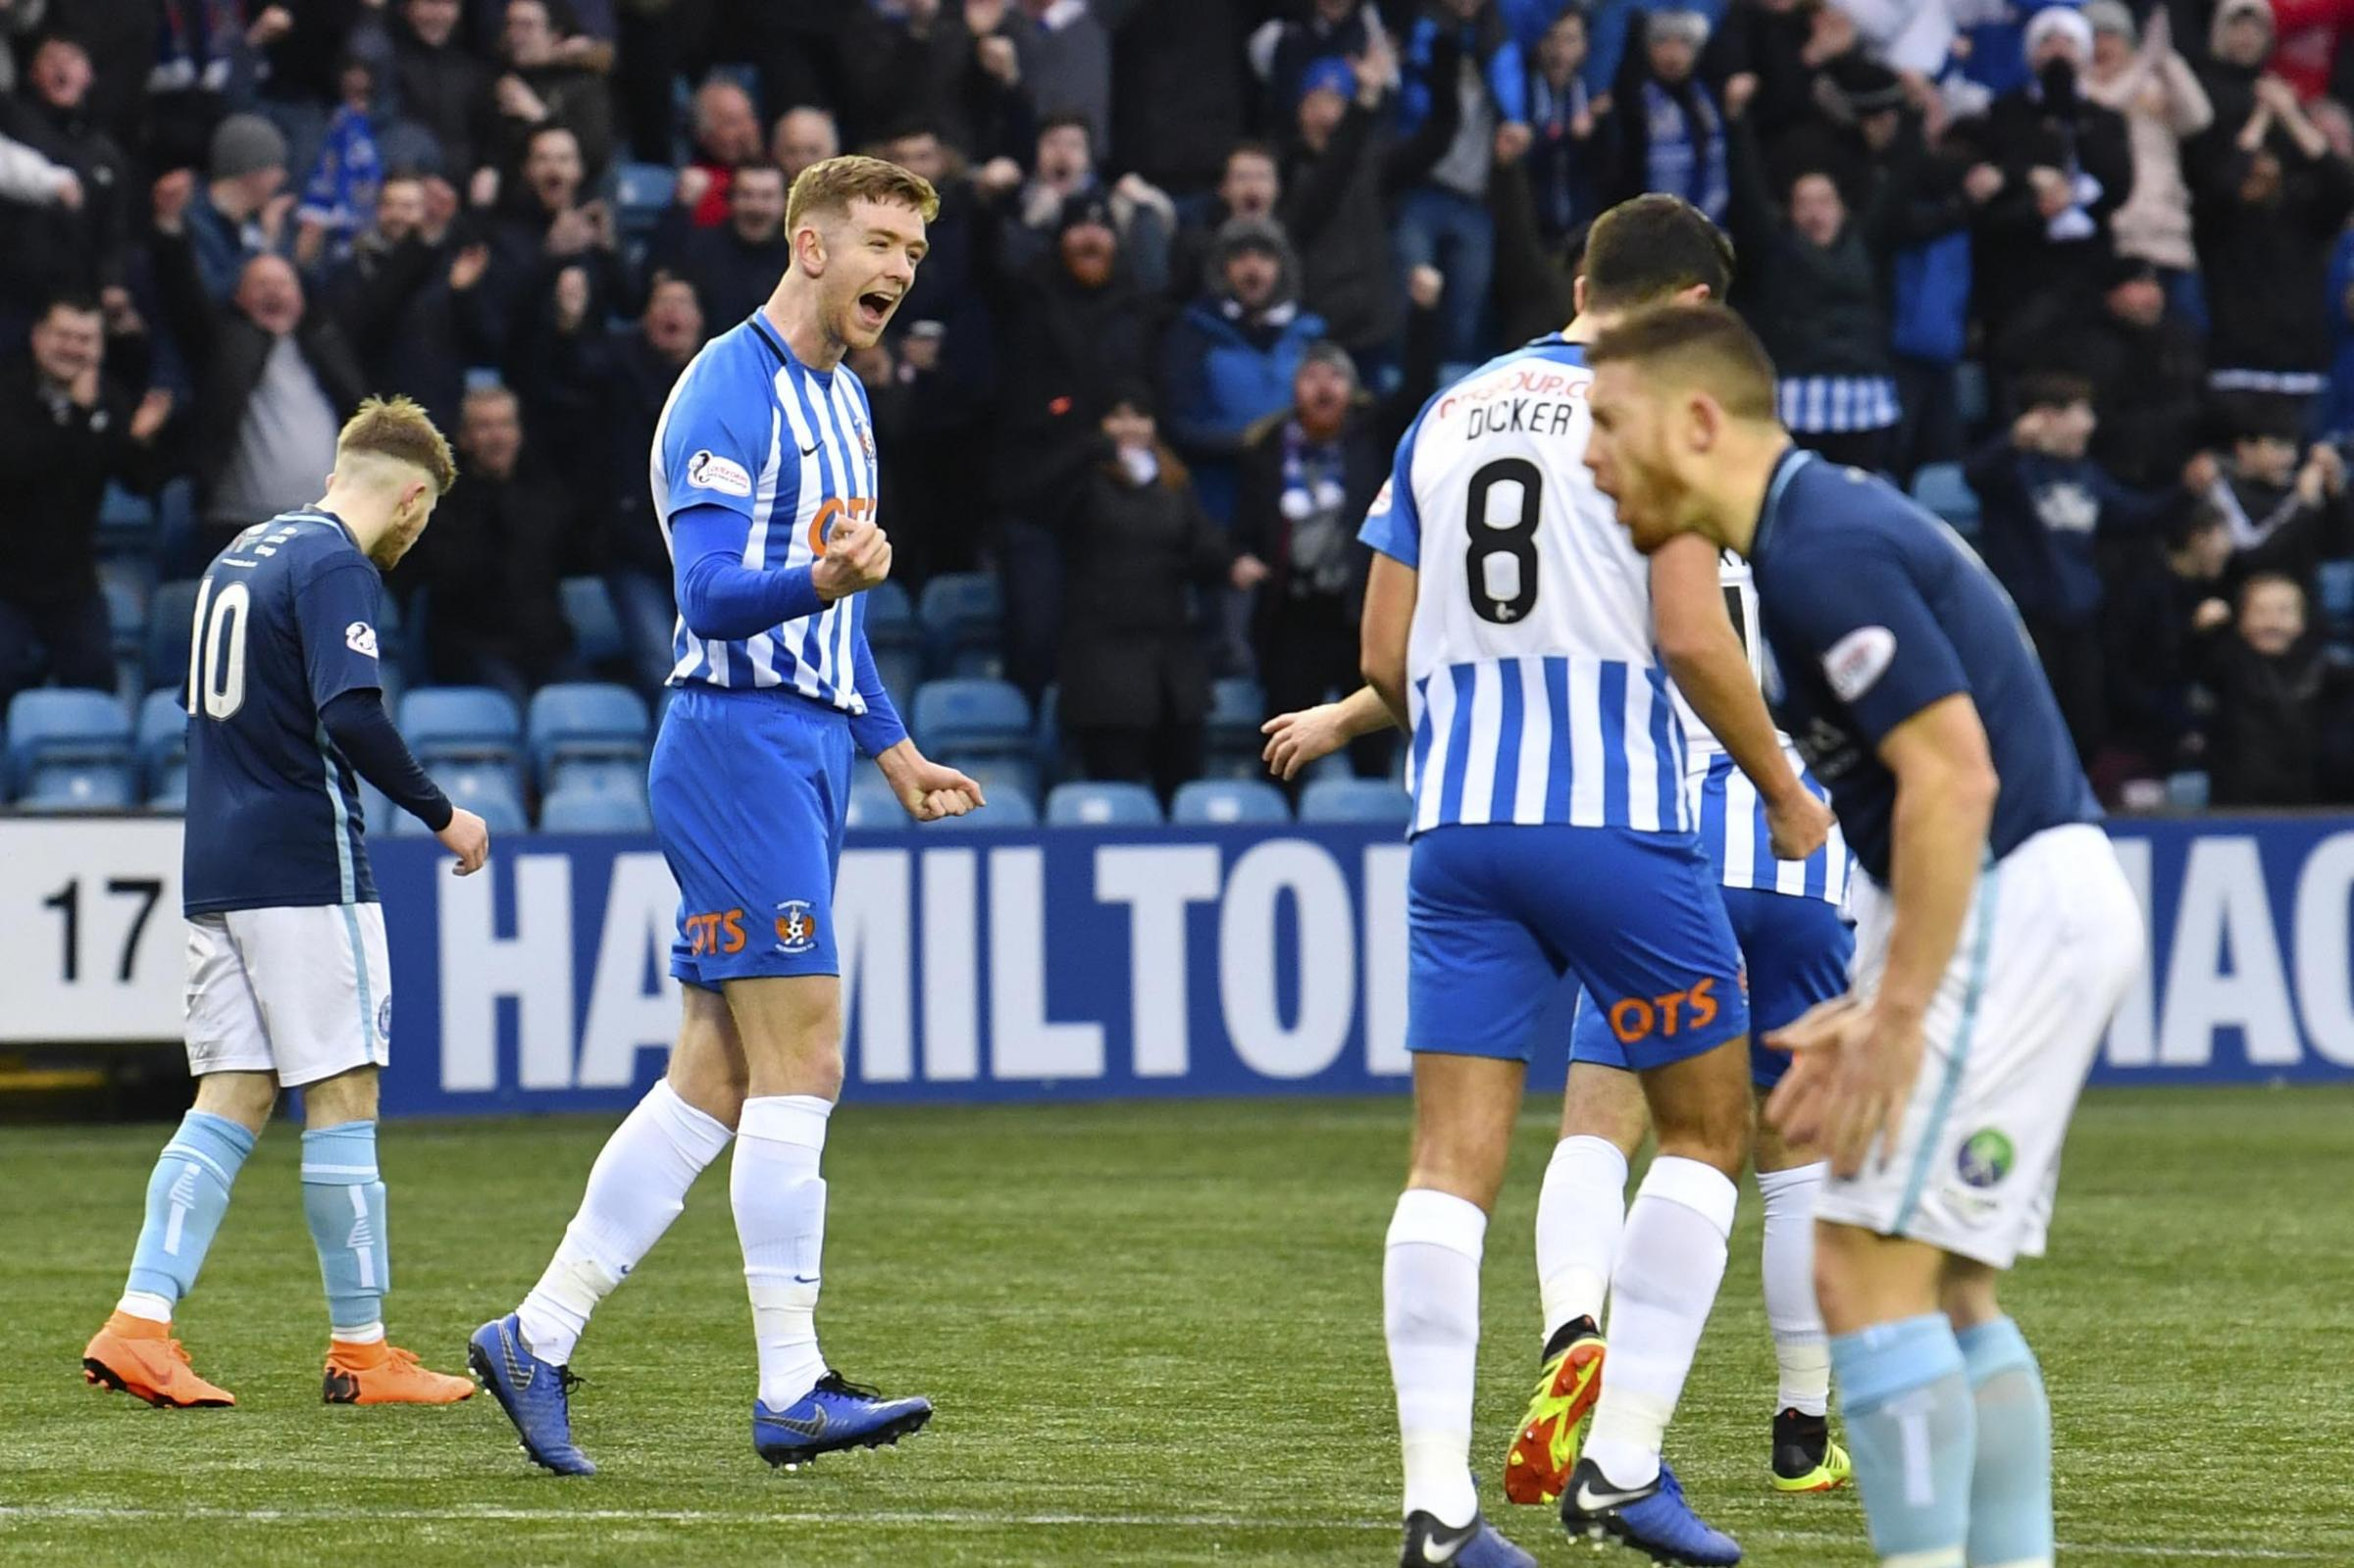 Kilmarnock's Stuart Findlay makes case for defence and attack